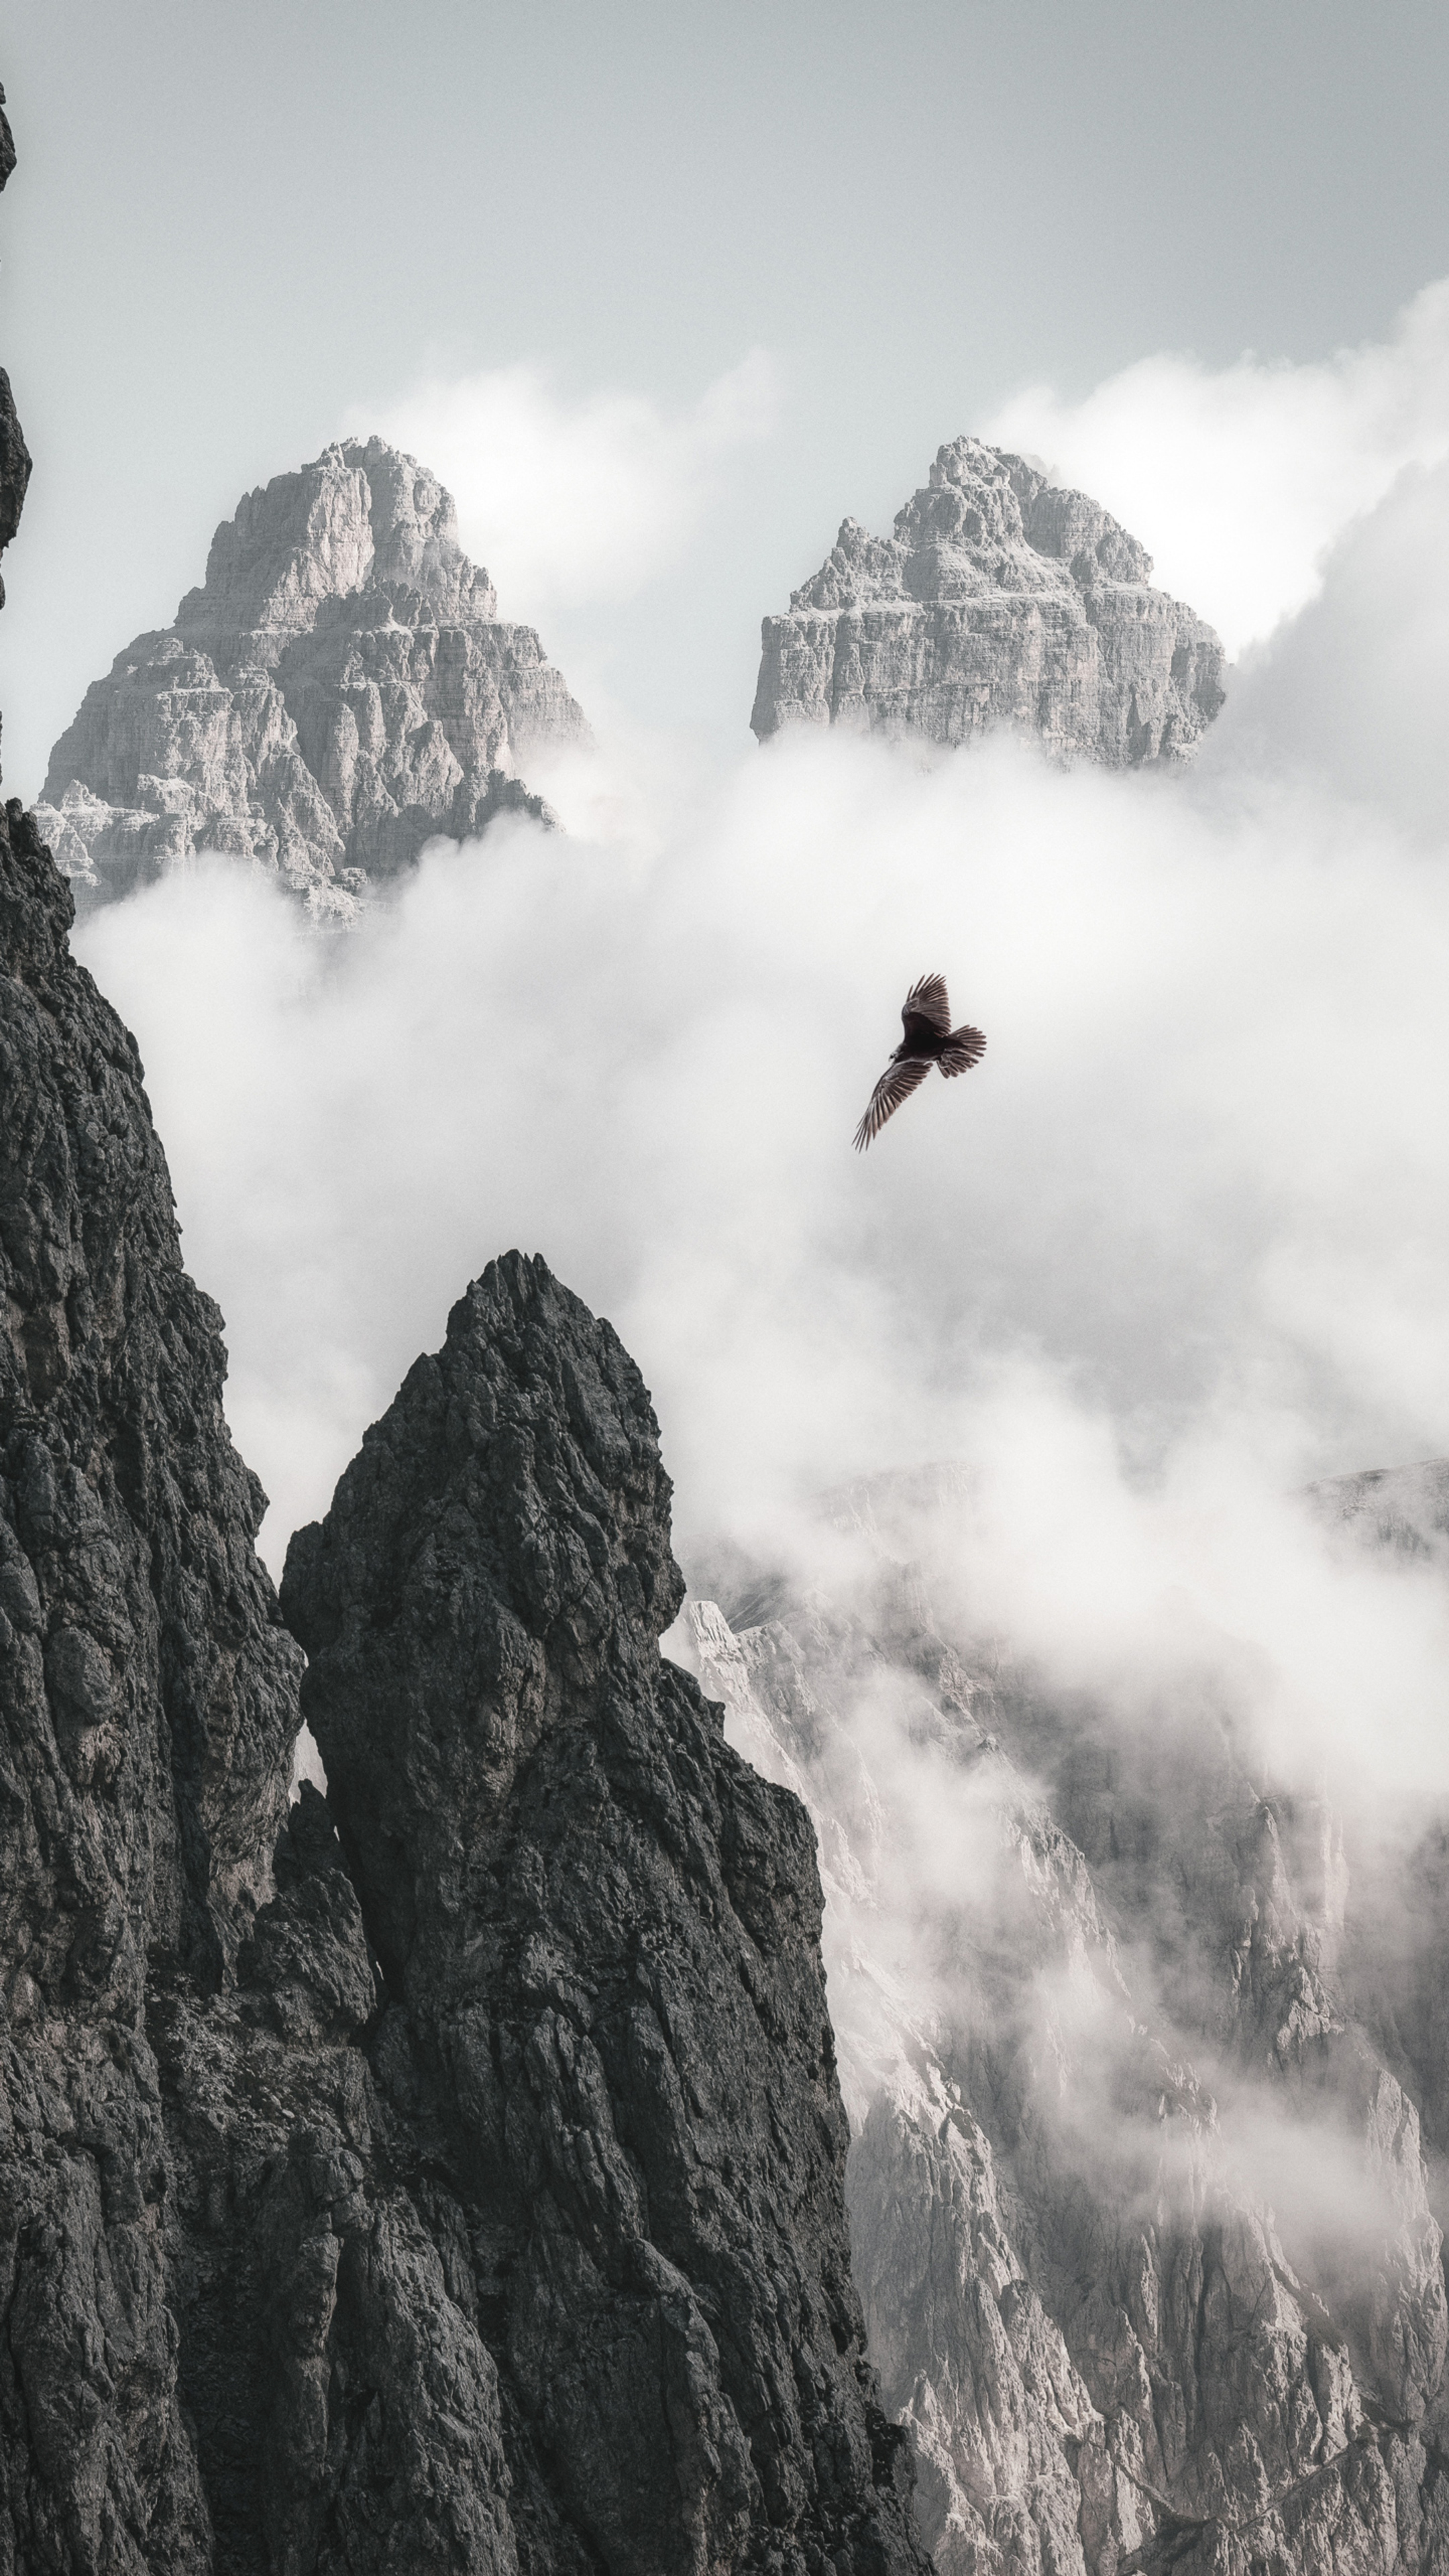 bald-eagle-flying-through-clouds-and-mountains-4k-je.jpg